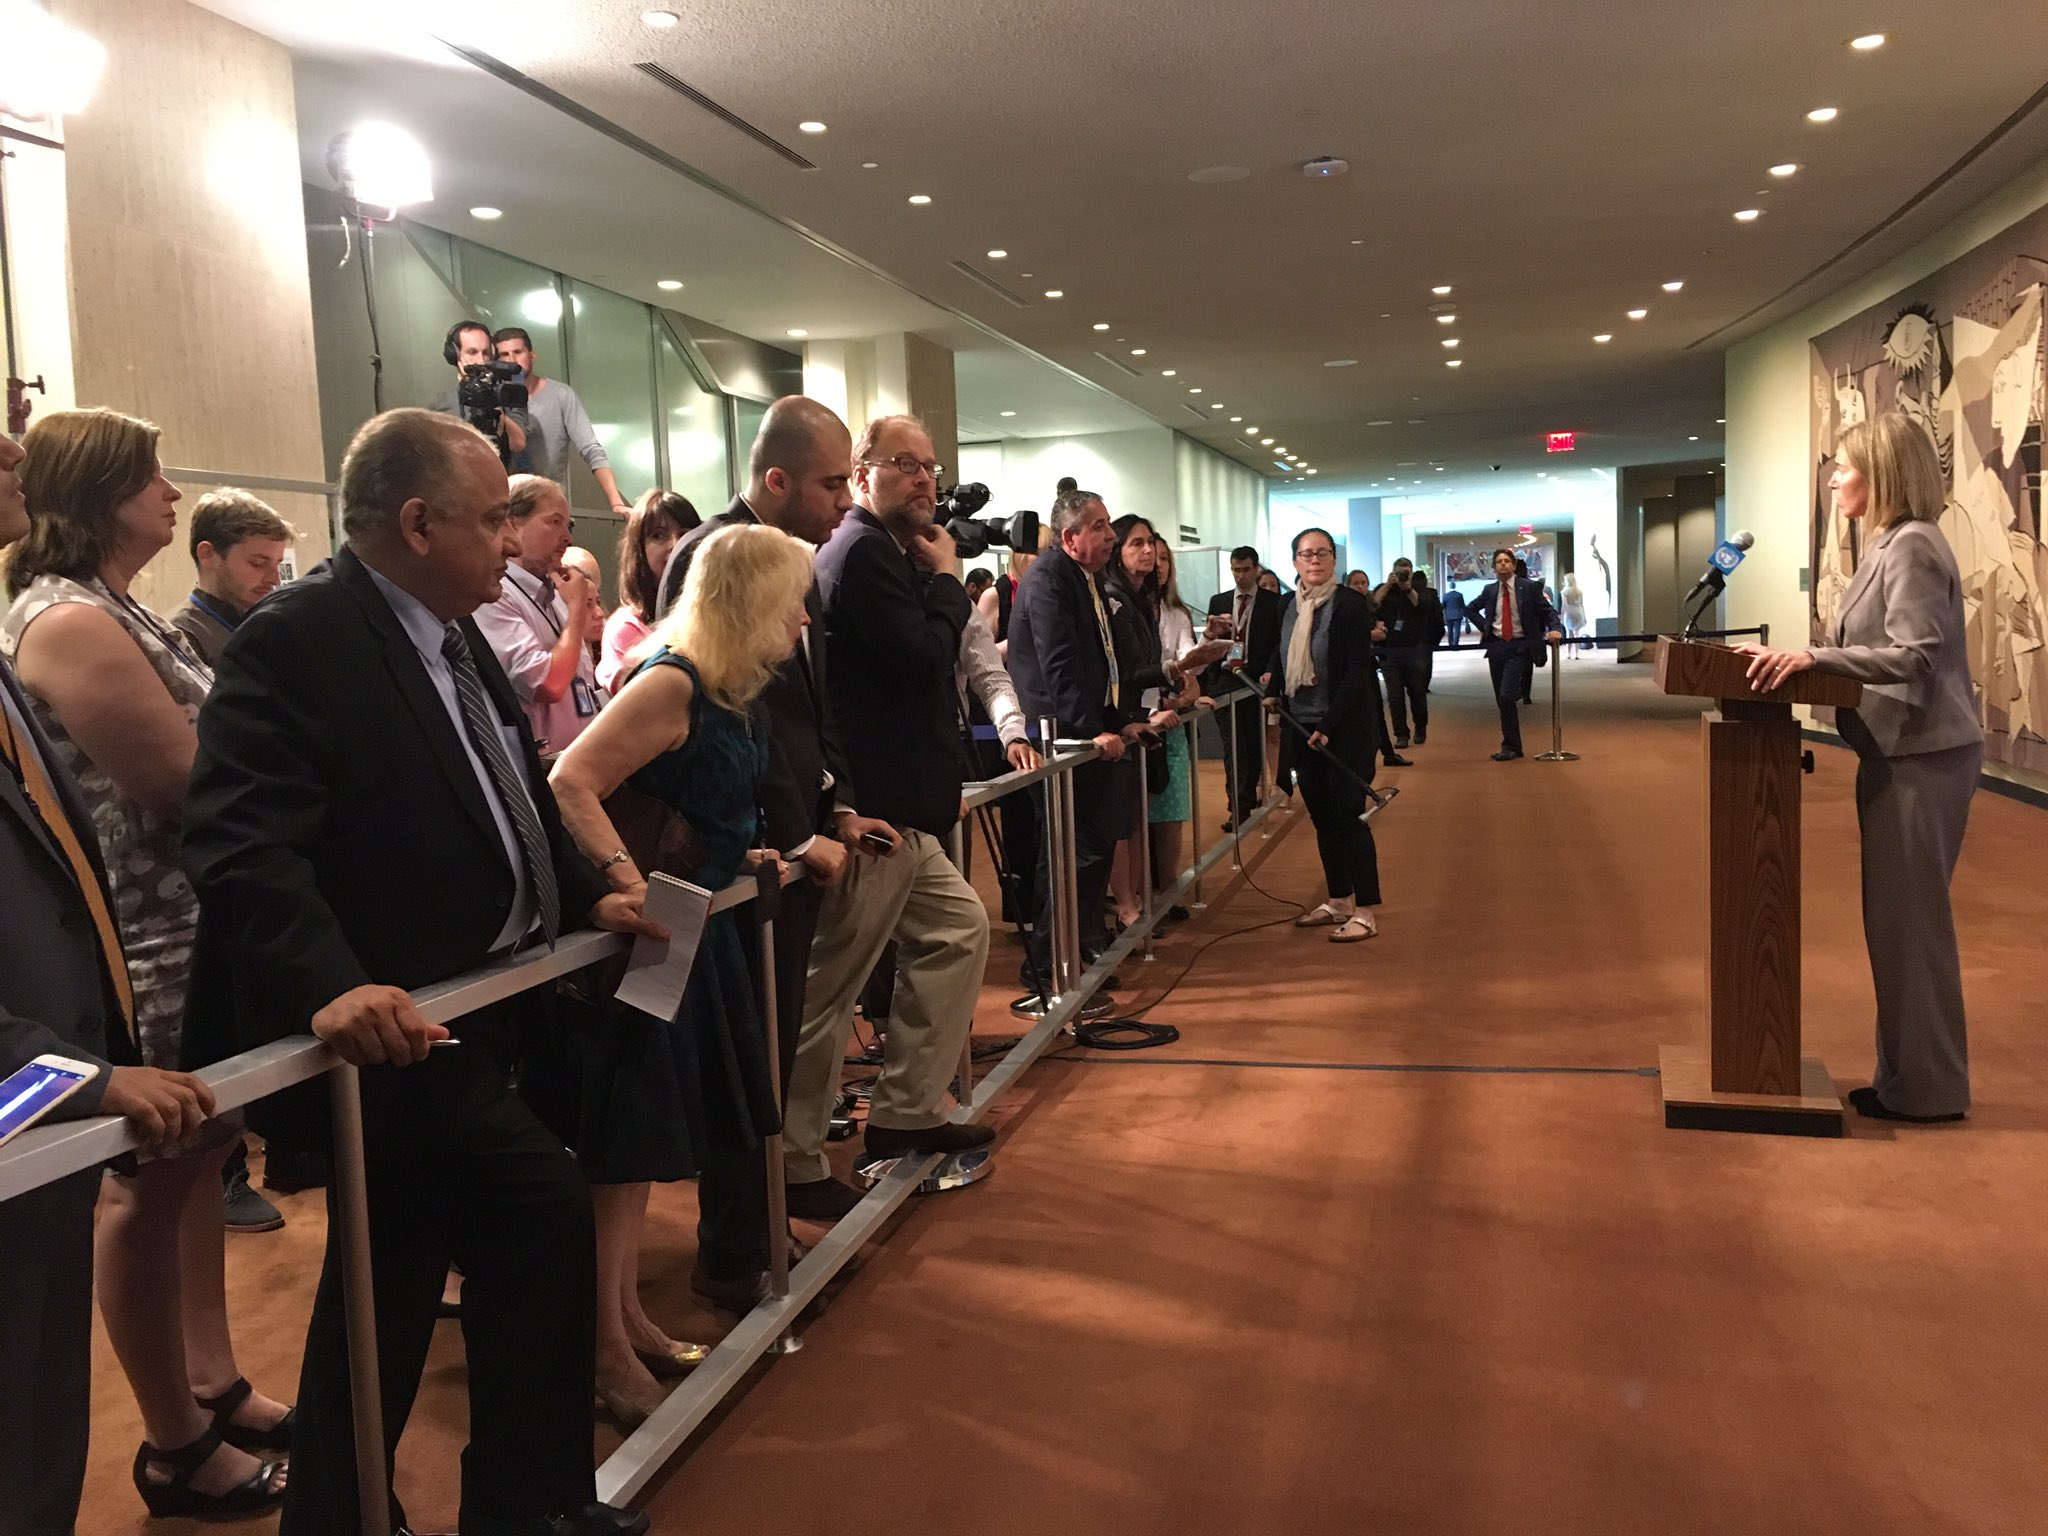 #EU HR @FedericaMog takes questions from @UN media following #UNSC briefing regional cooperation. https://t.co/WxJ0G6EH7N